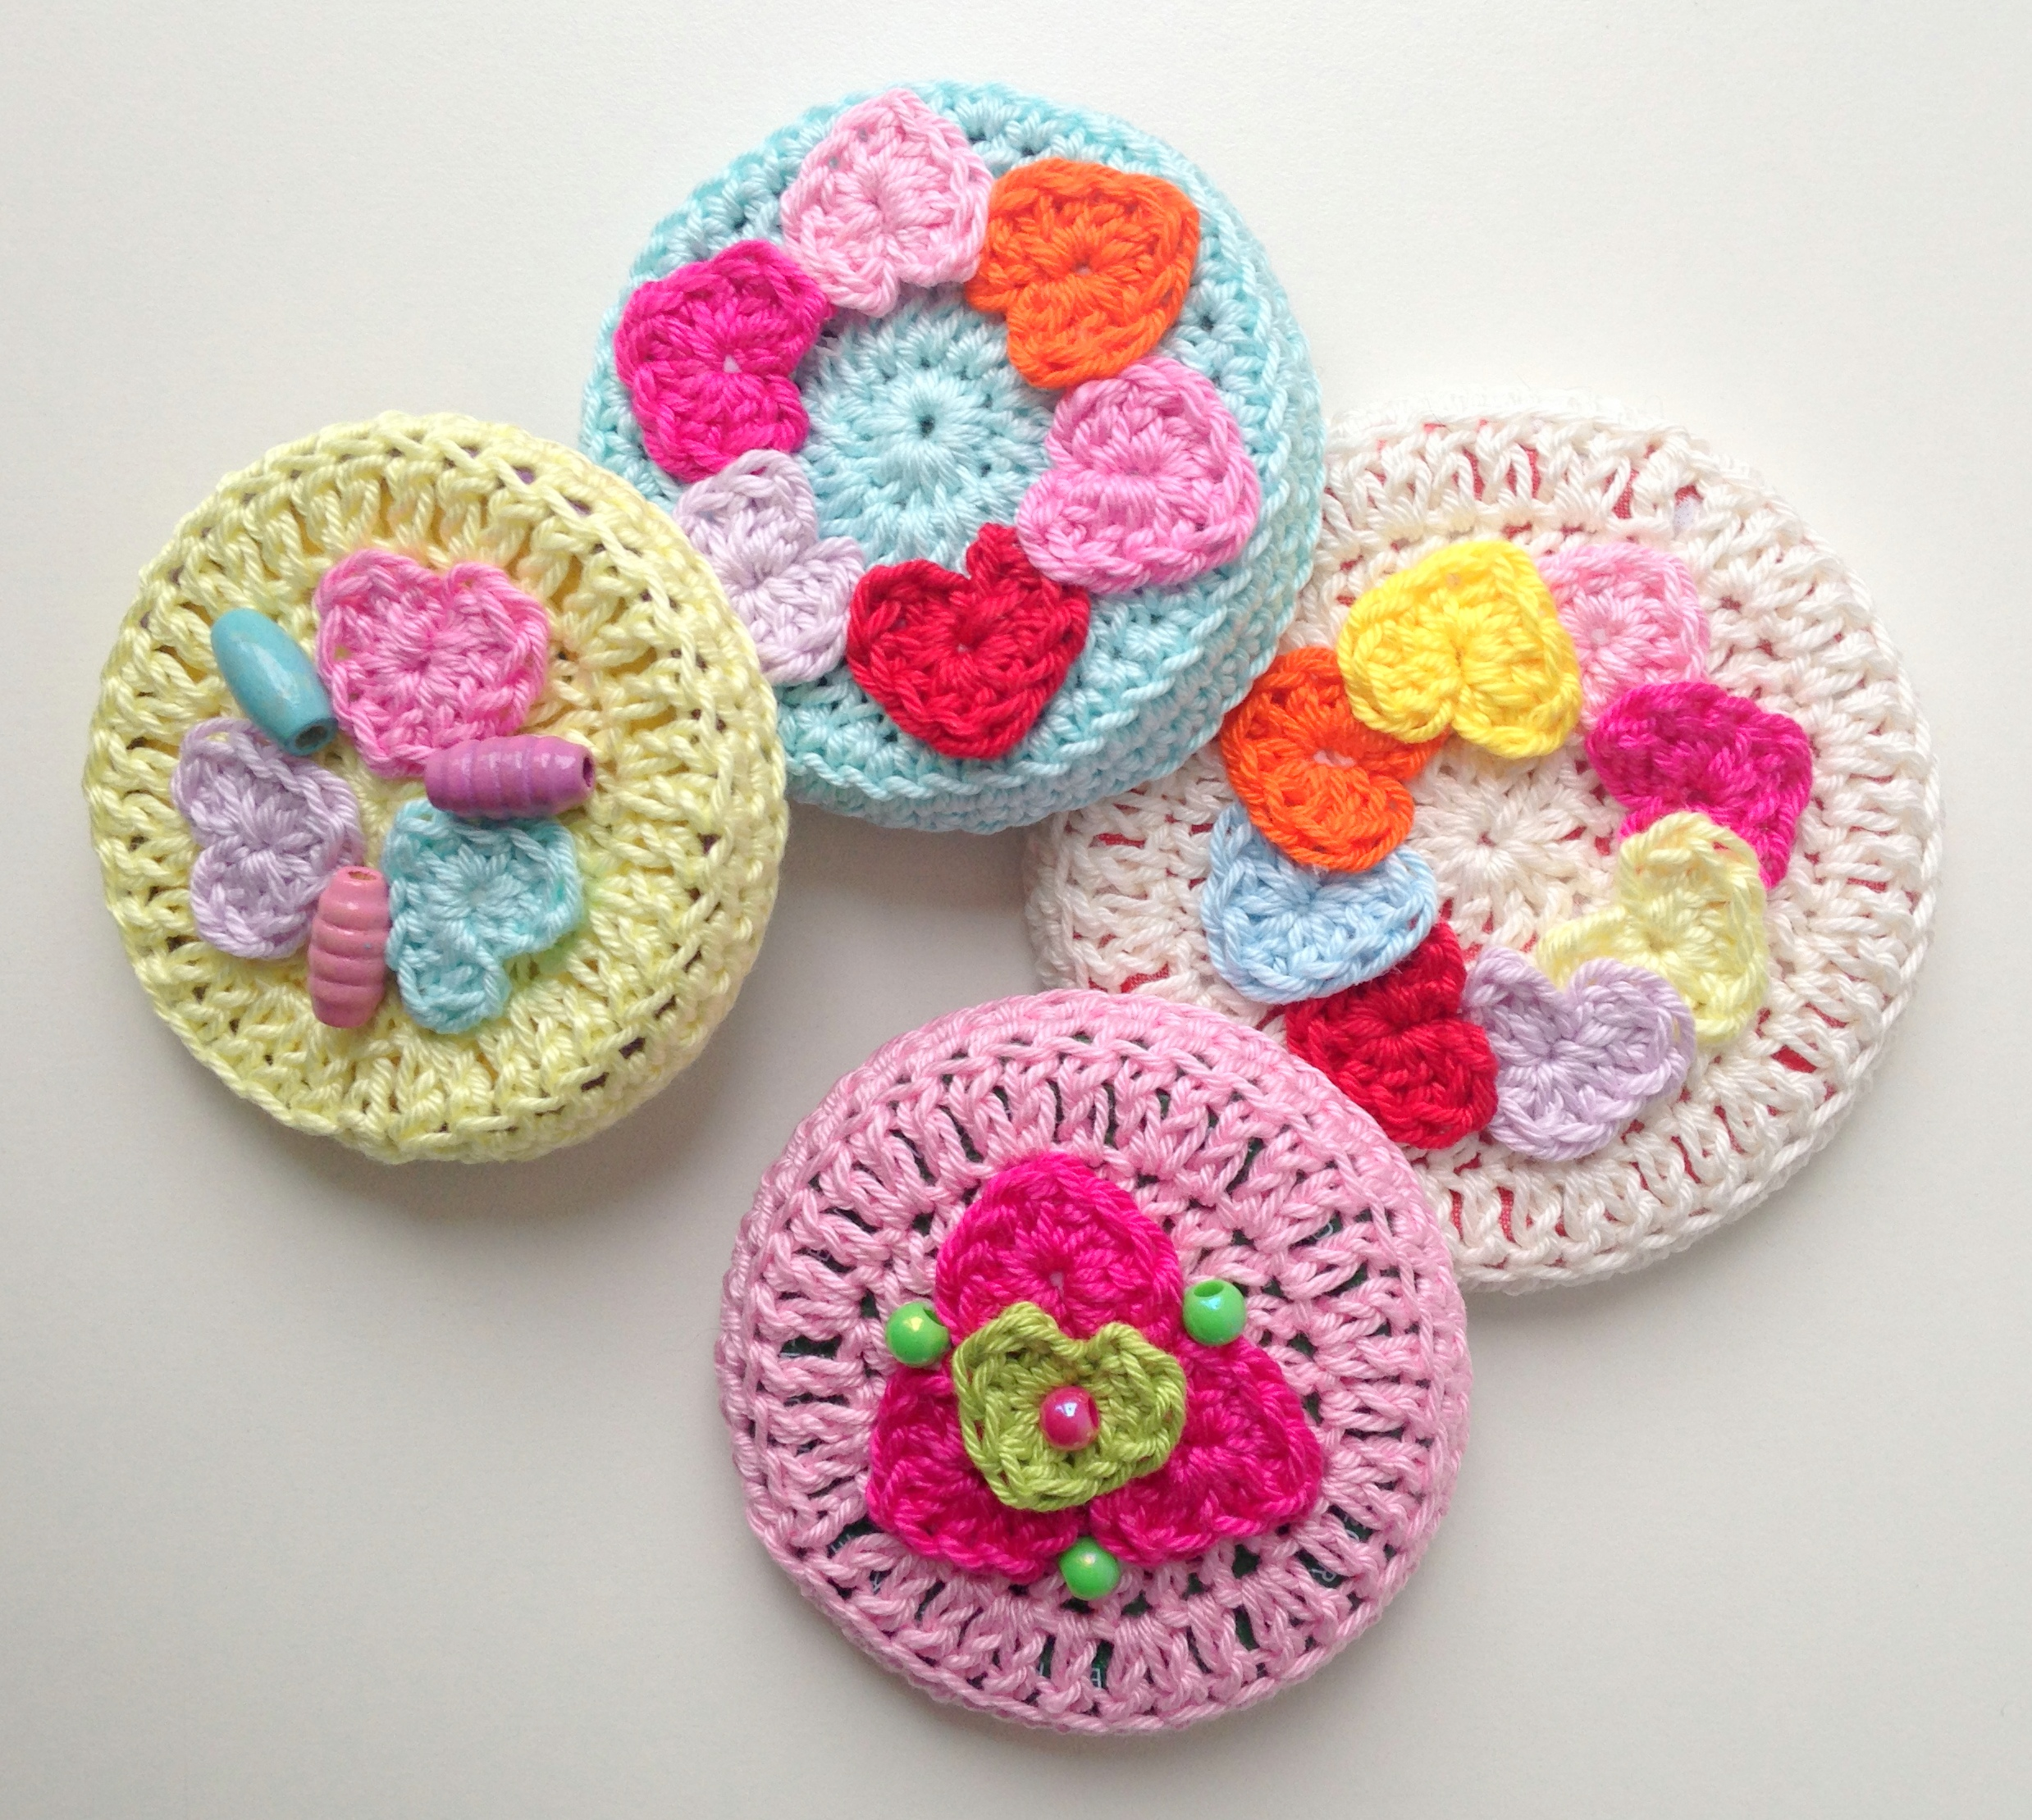 Crochet Patterns Jar Lids : Crocheted Jar Lid Covers maRRose CCC